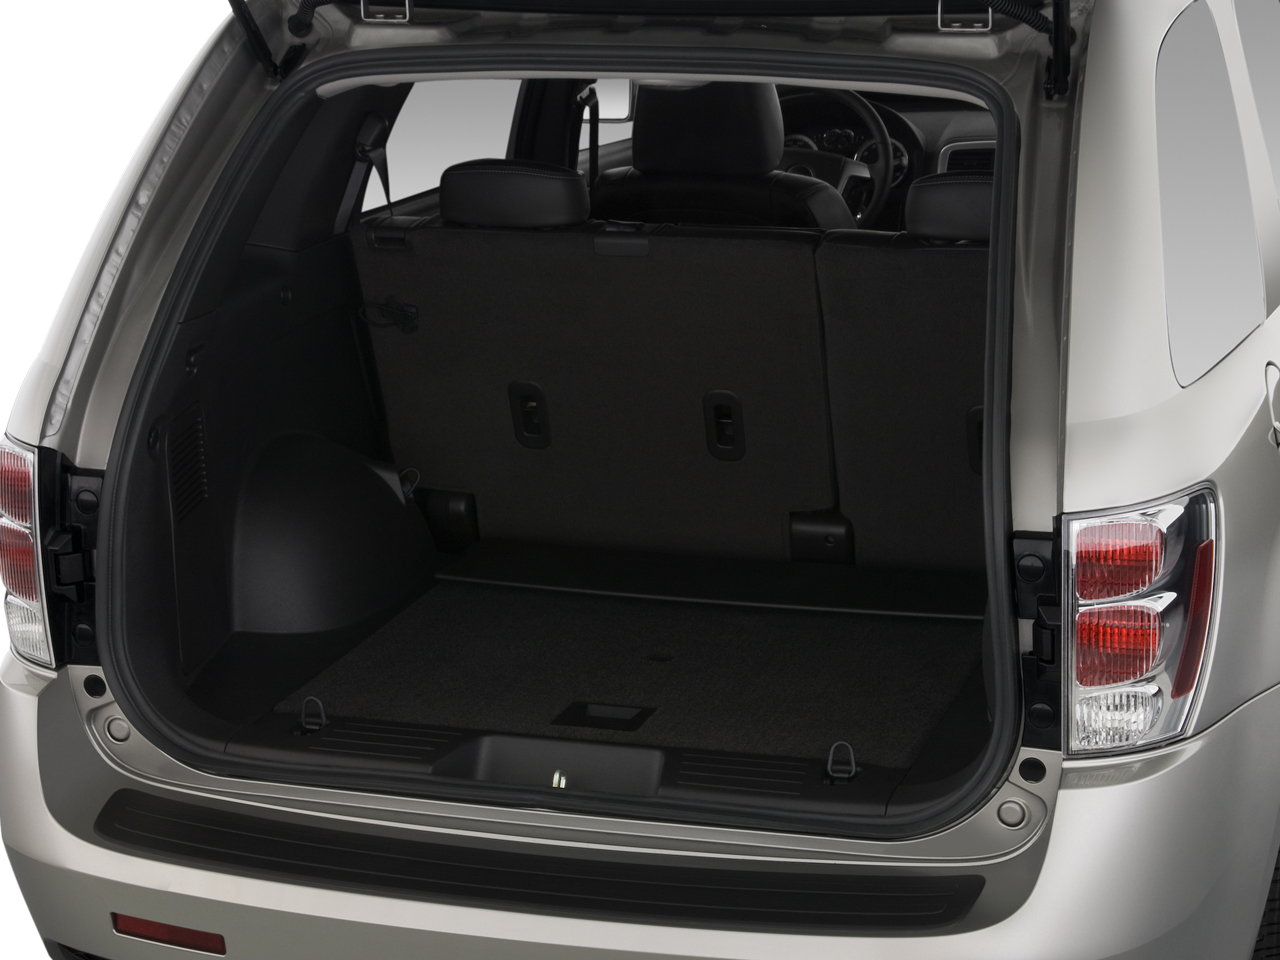 2008 Chevy Equinox Fuel Cell Diary - Day Three - Latest News ...